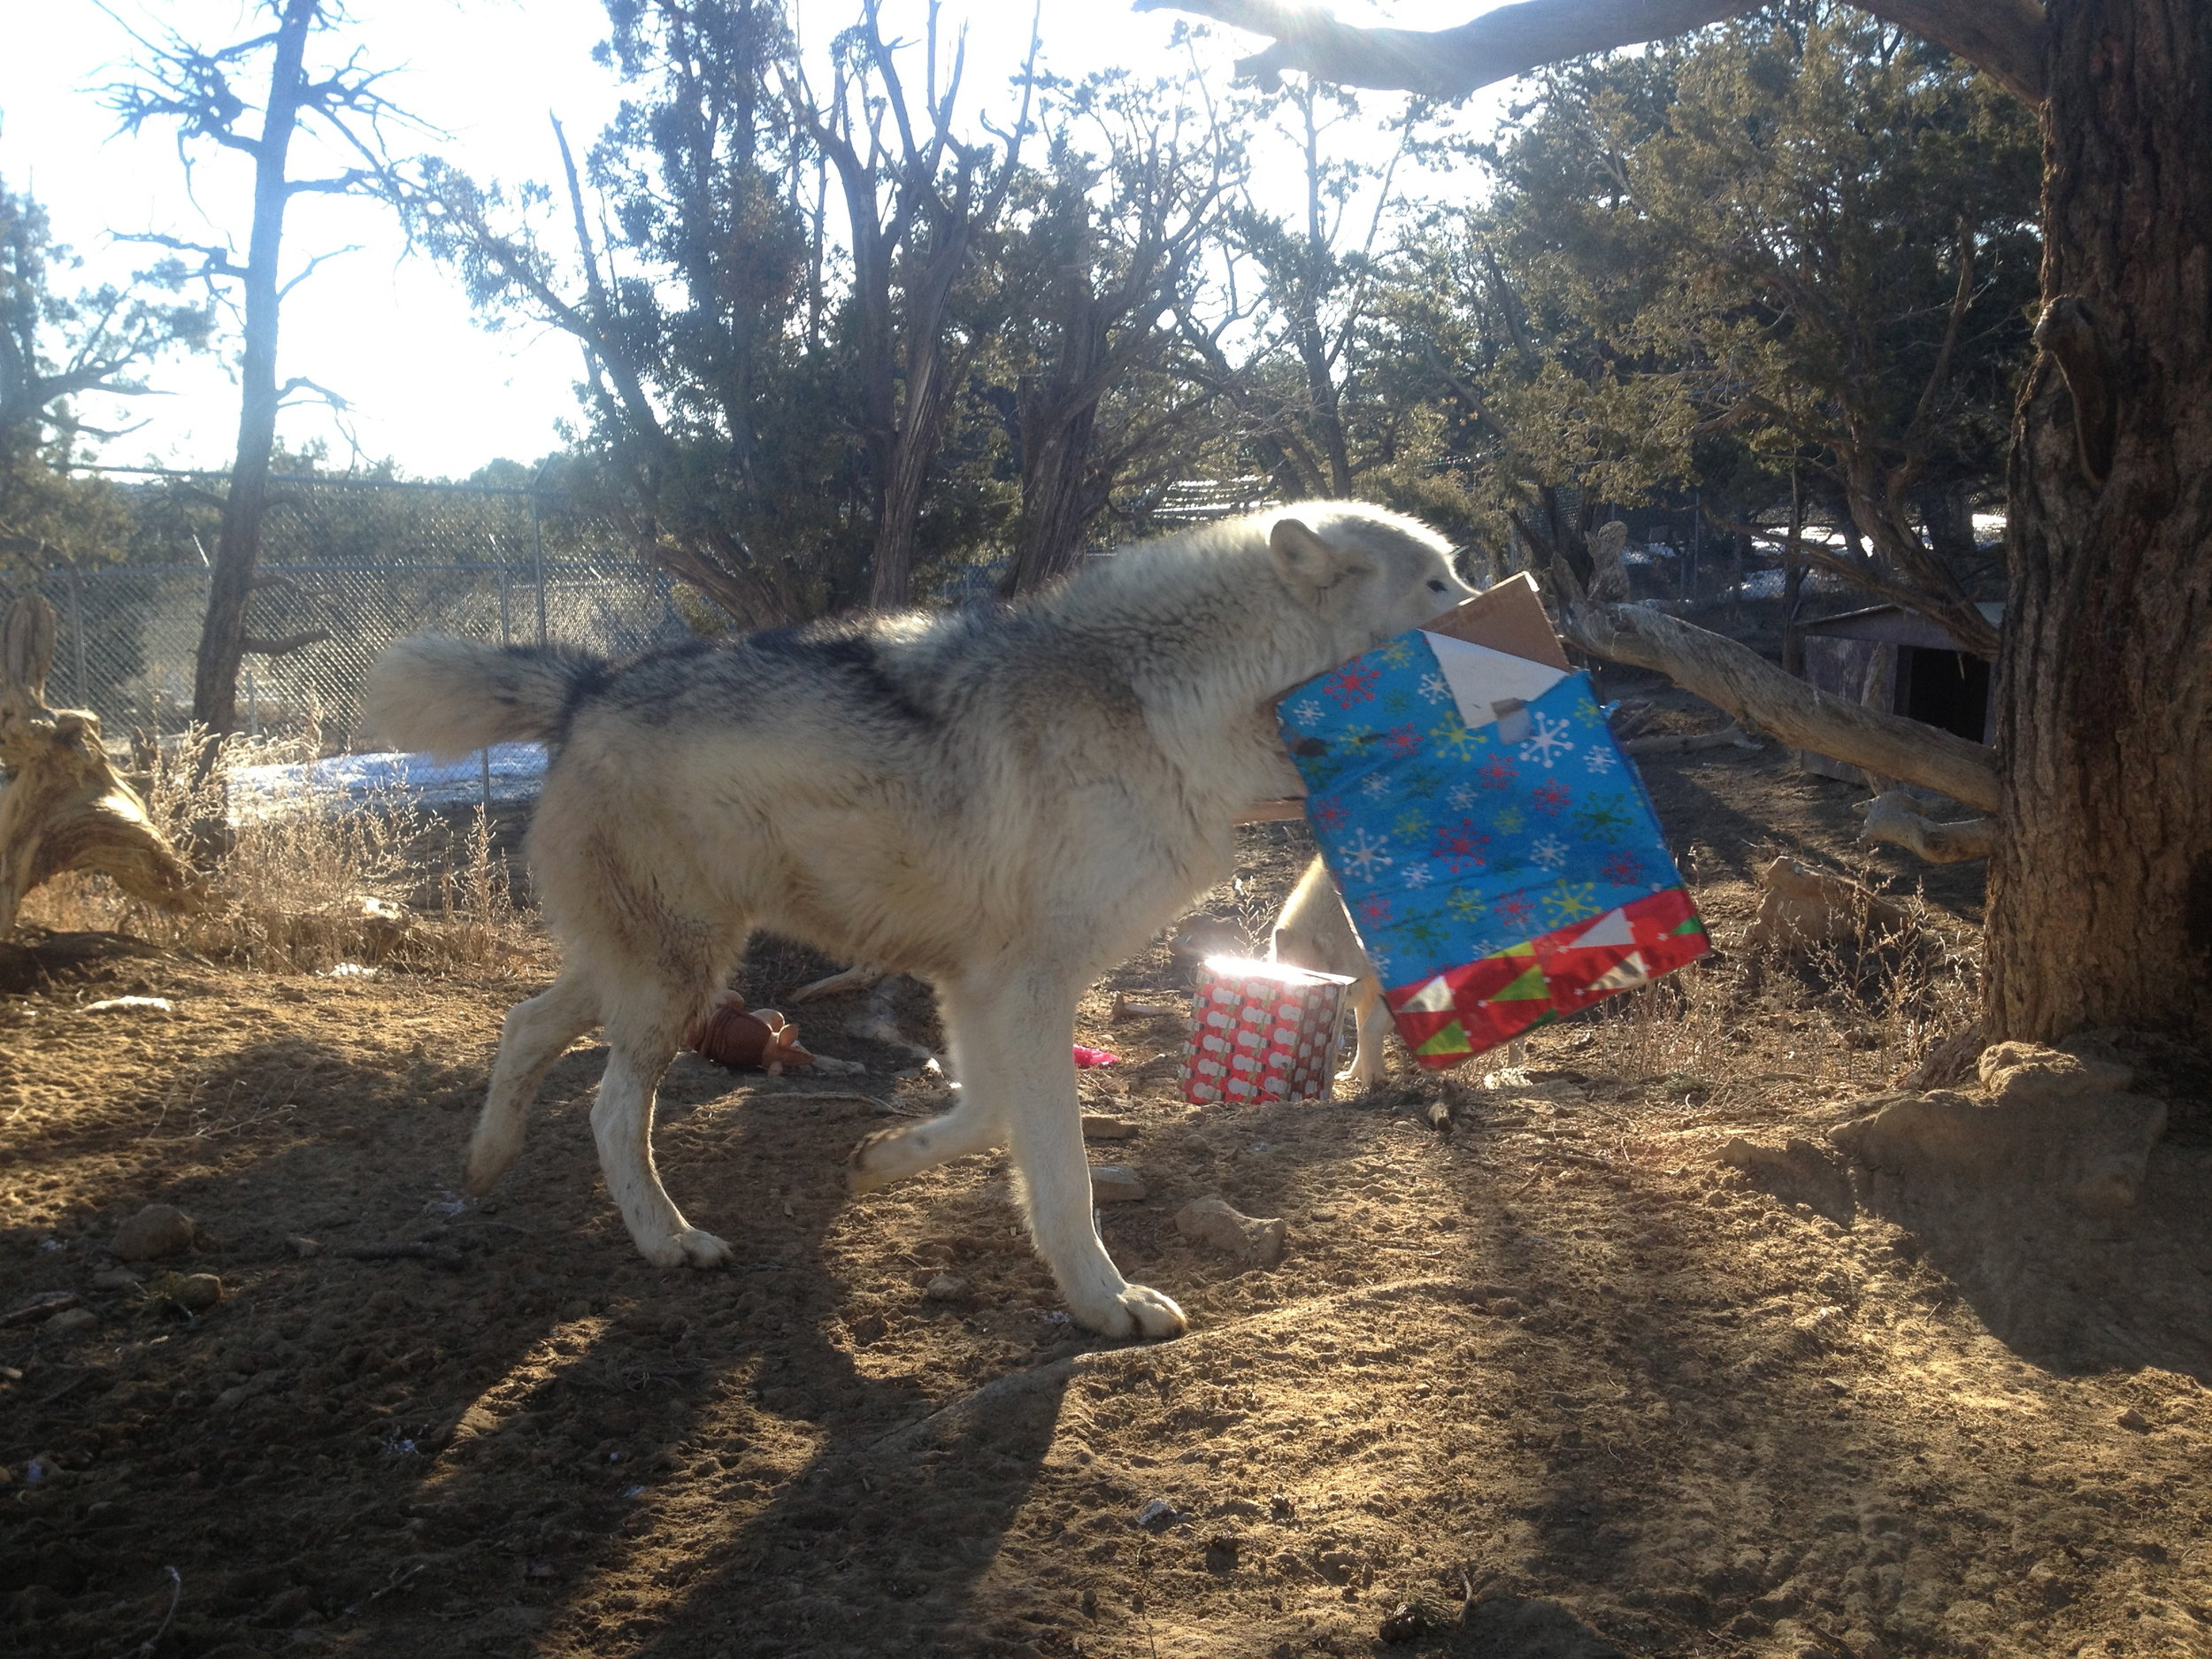 Wolf-dog, Nimoy, showing off his present.